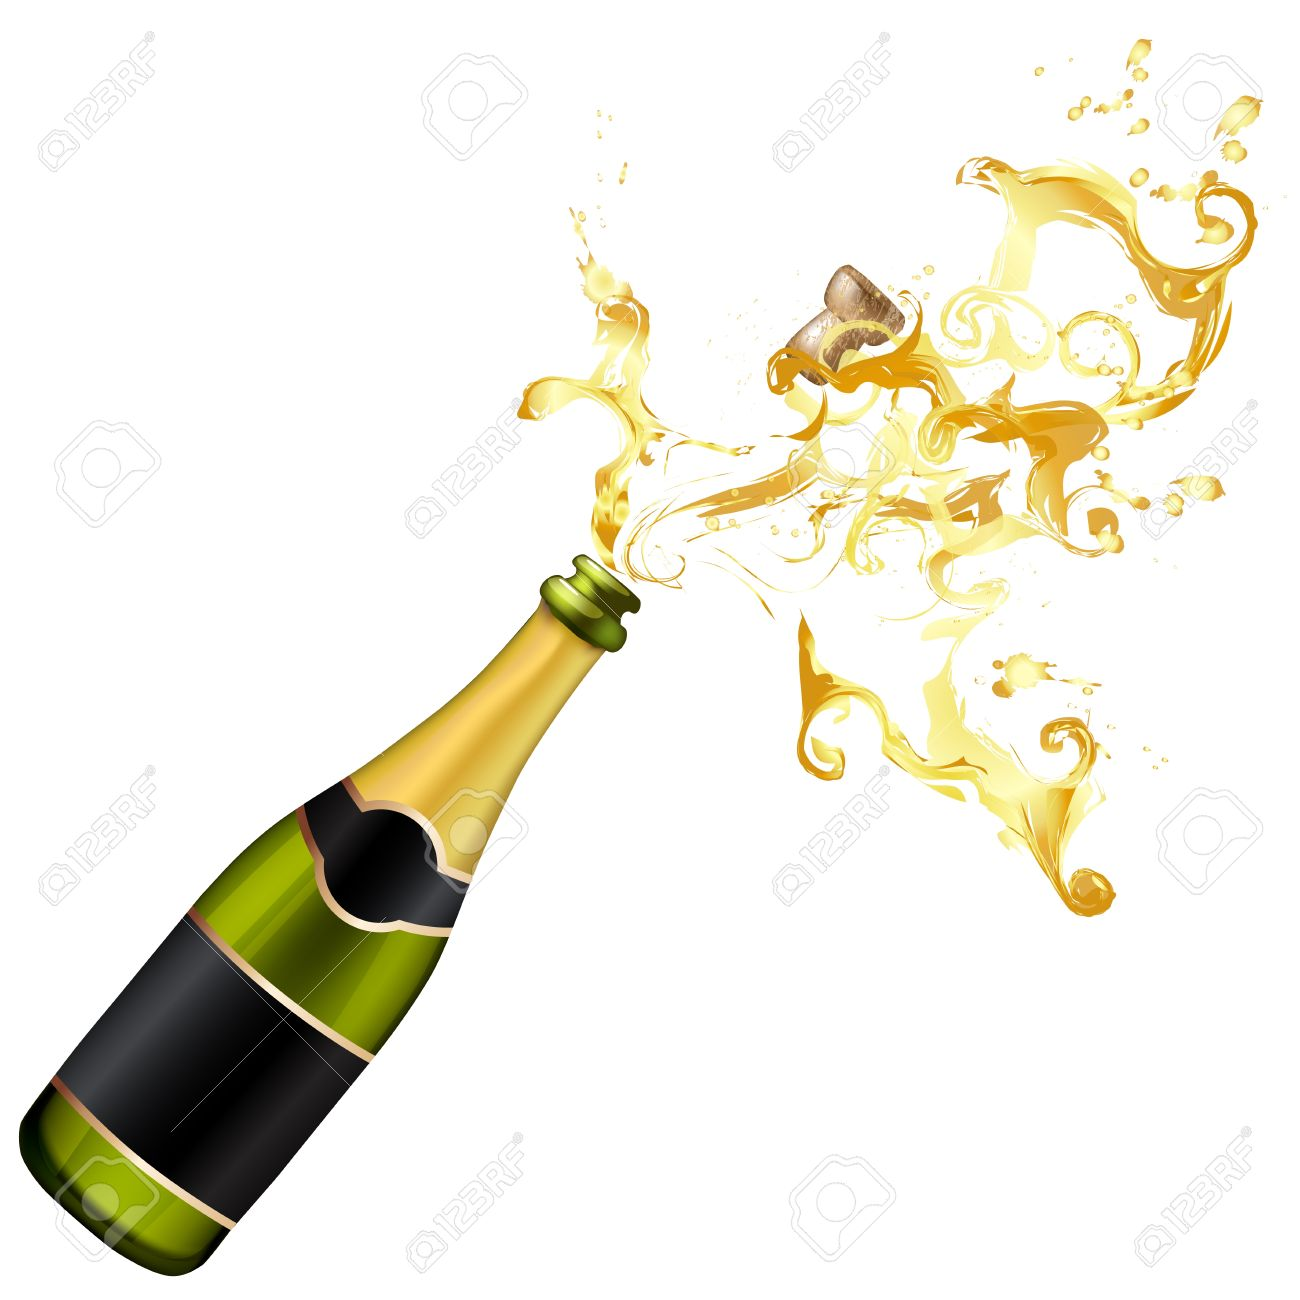 376 Champagne Bottle free clipart.